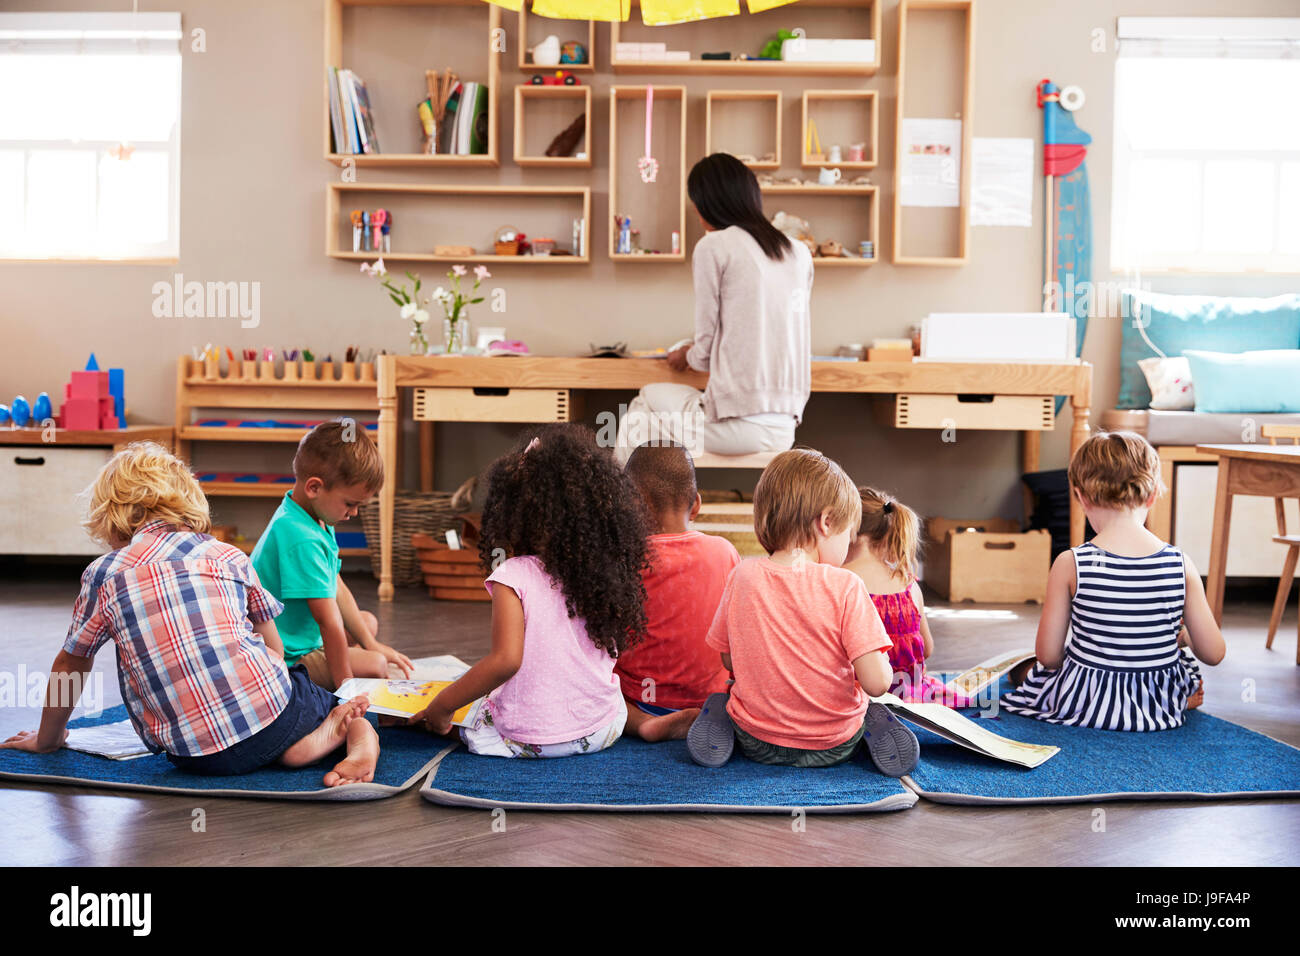 Pupils At Montessori School Reading Independently In Classroom - Stock Image